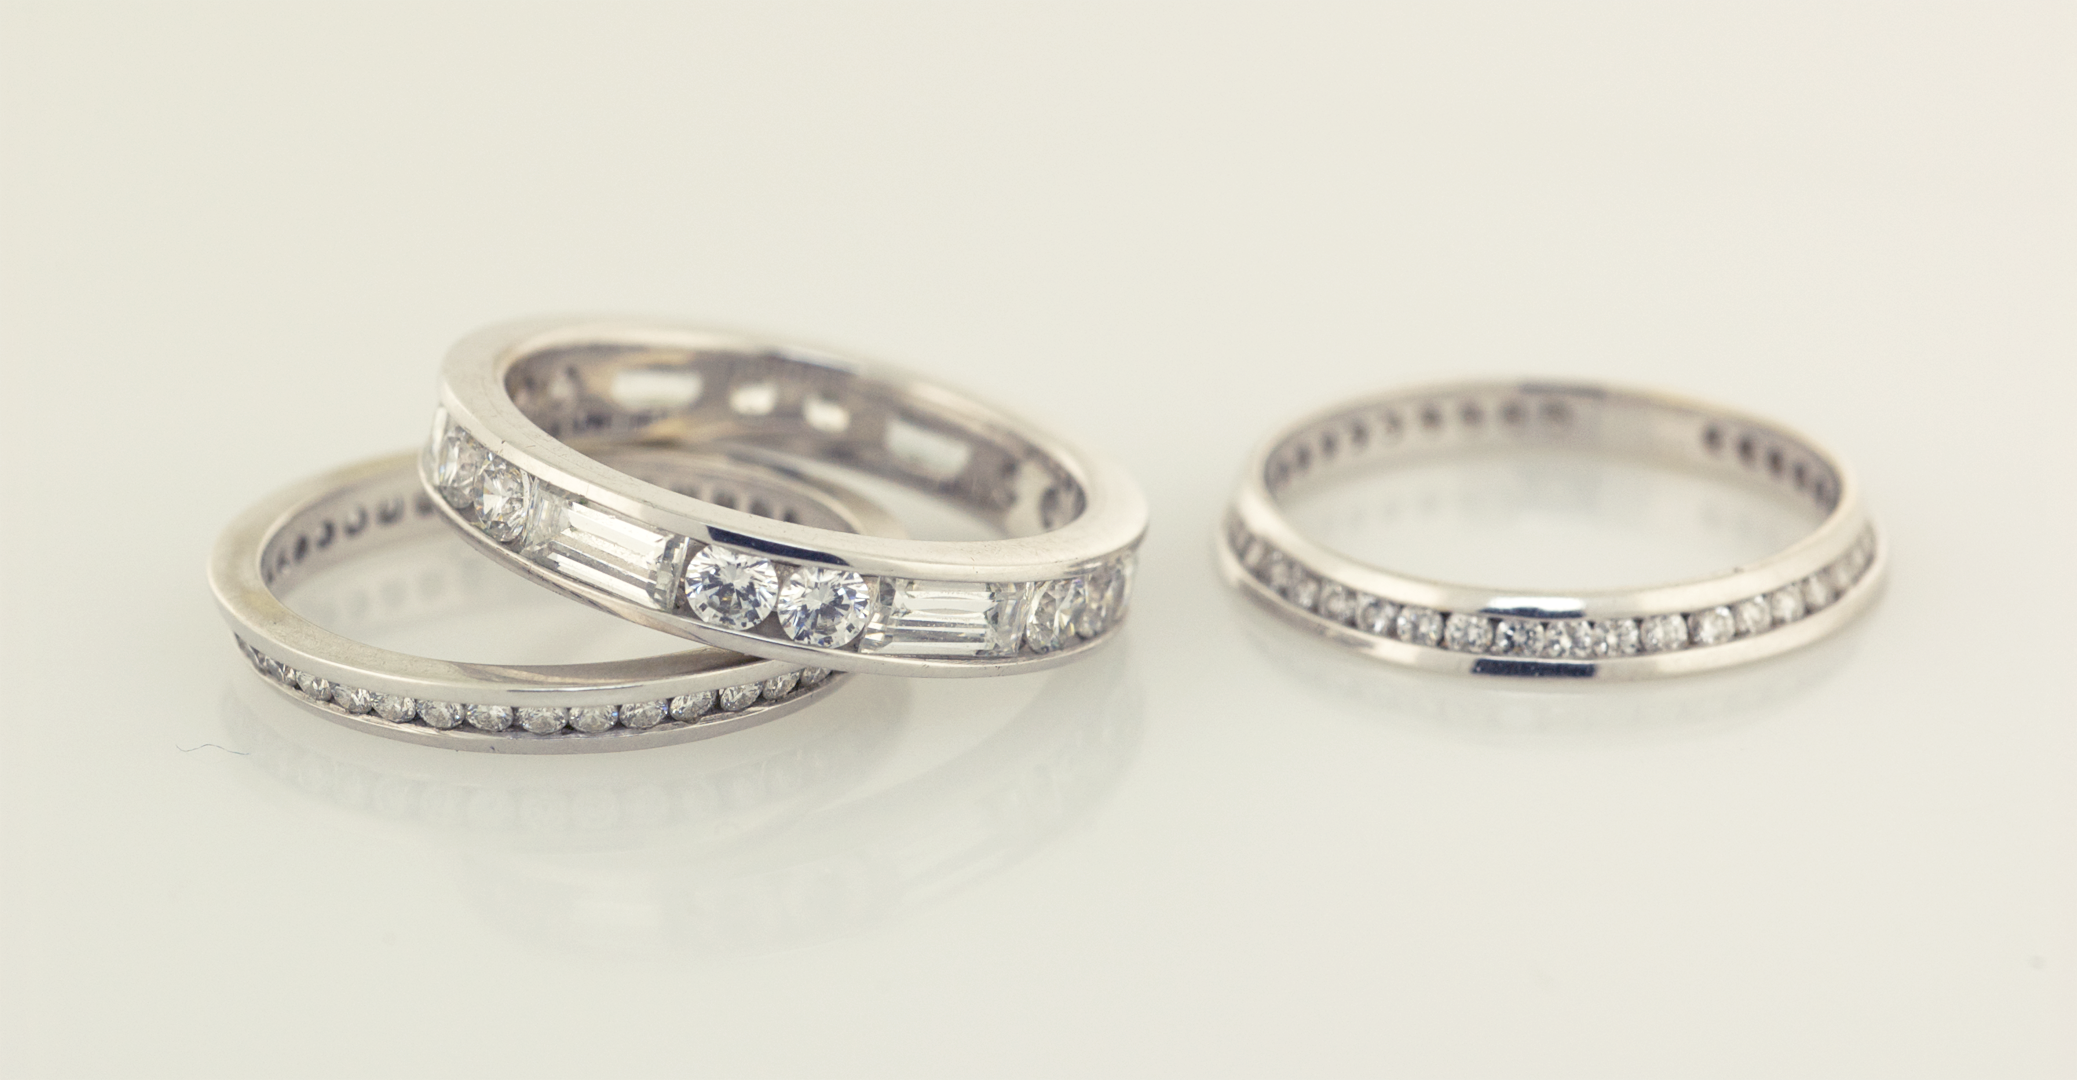 wedding products bands band collection silverscape july ring heirloom of halo copy engagement baguette anniversary designs